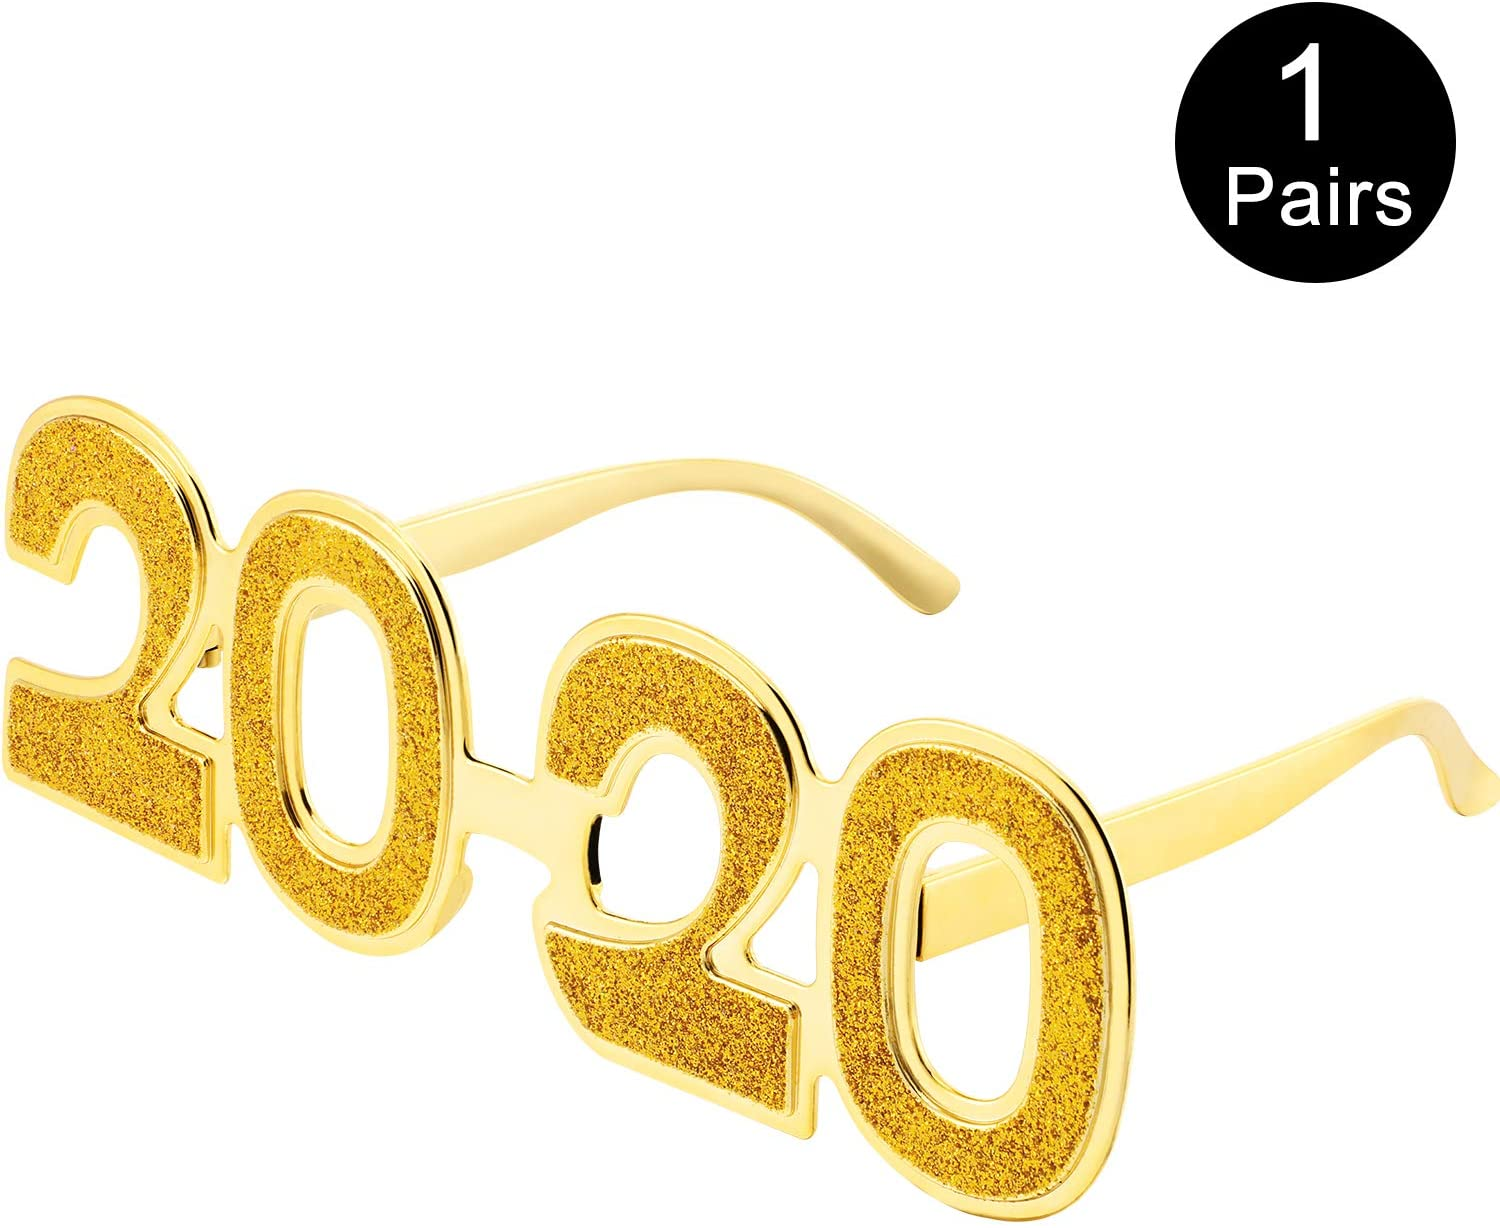 2020 Eyeglasses Glitter 2020 Number Glasses New Year Fun Eyewear Novelty Glasses for 2020 New Year Party Favors Grad Party Supplies (Glitter Gold, 1 Pair)